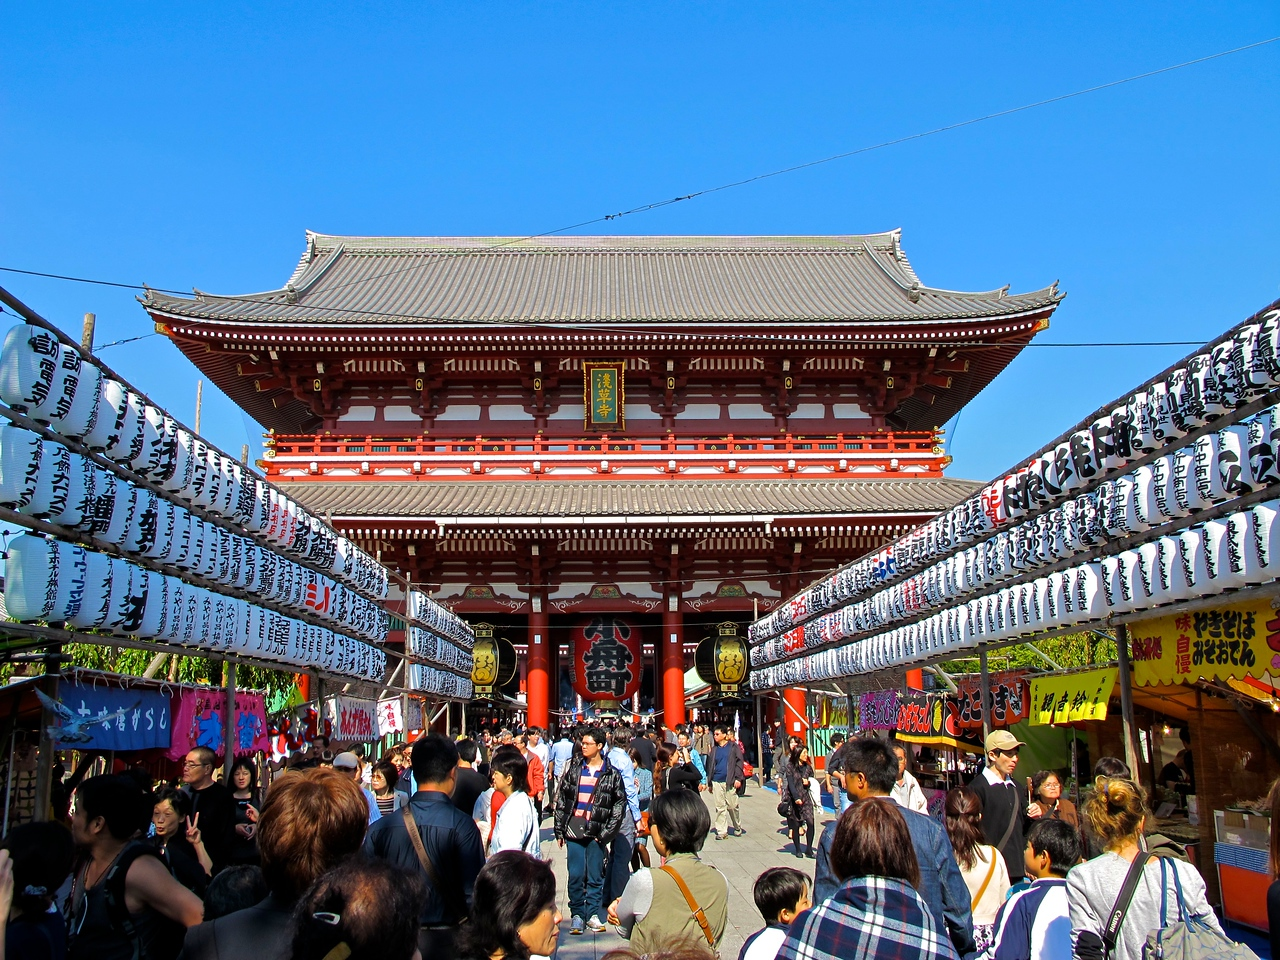 Nakamise has about 90 different stalls selling everything from souvenirs to street food.  The street has been a shopping street for hundreds of years.